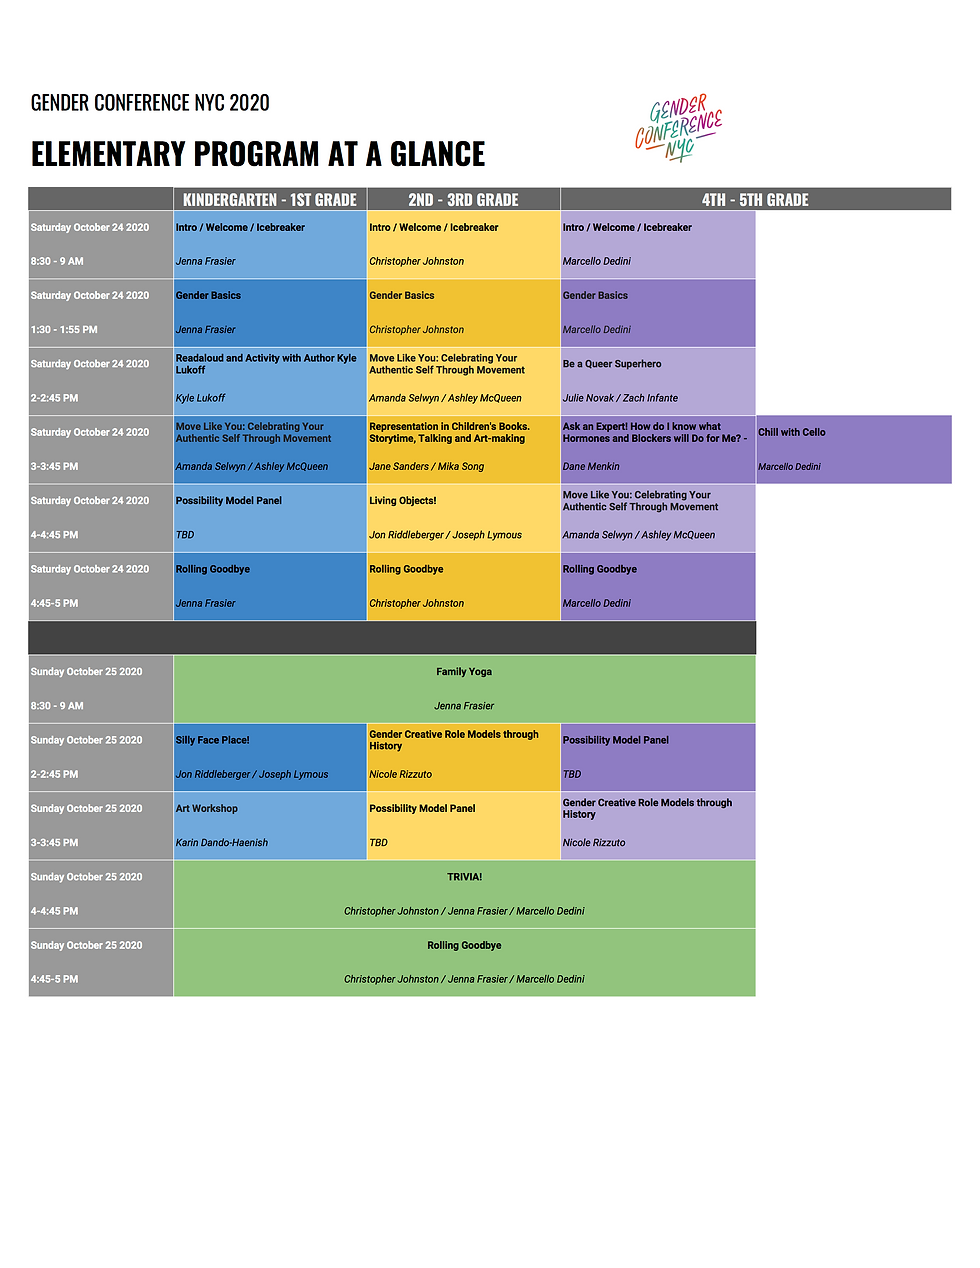 Elementary Grid 083120.png